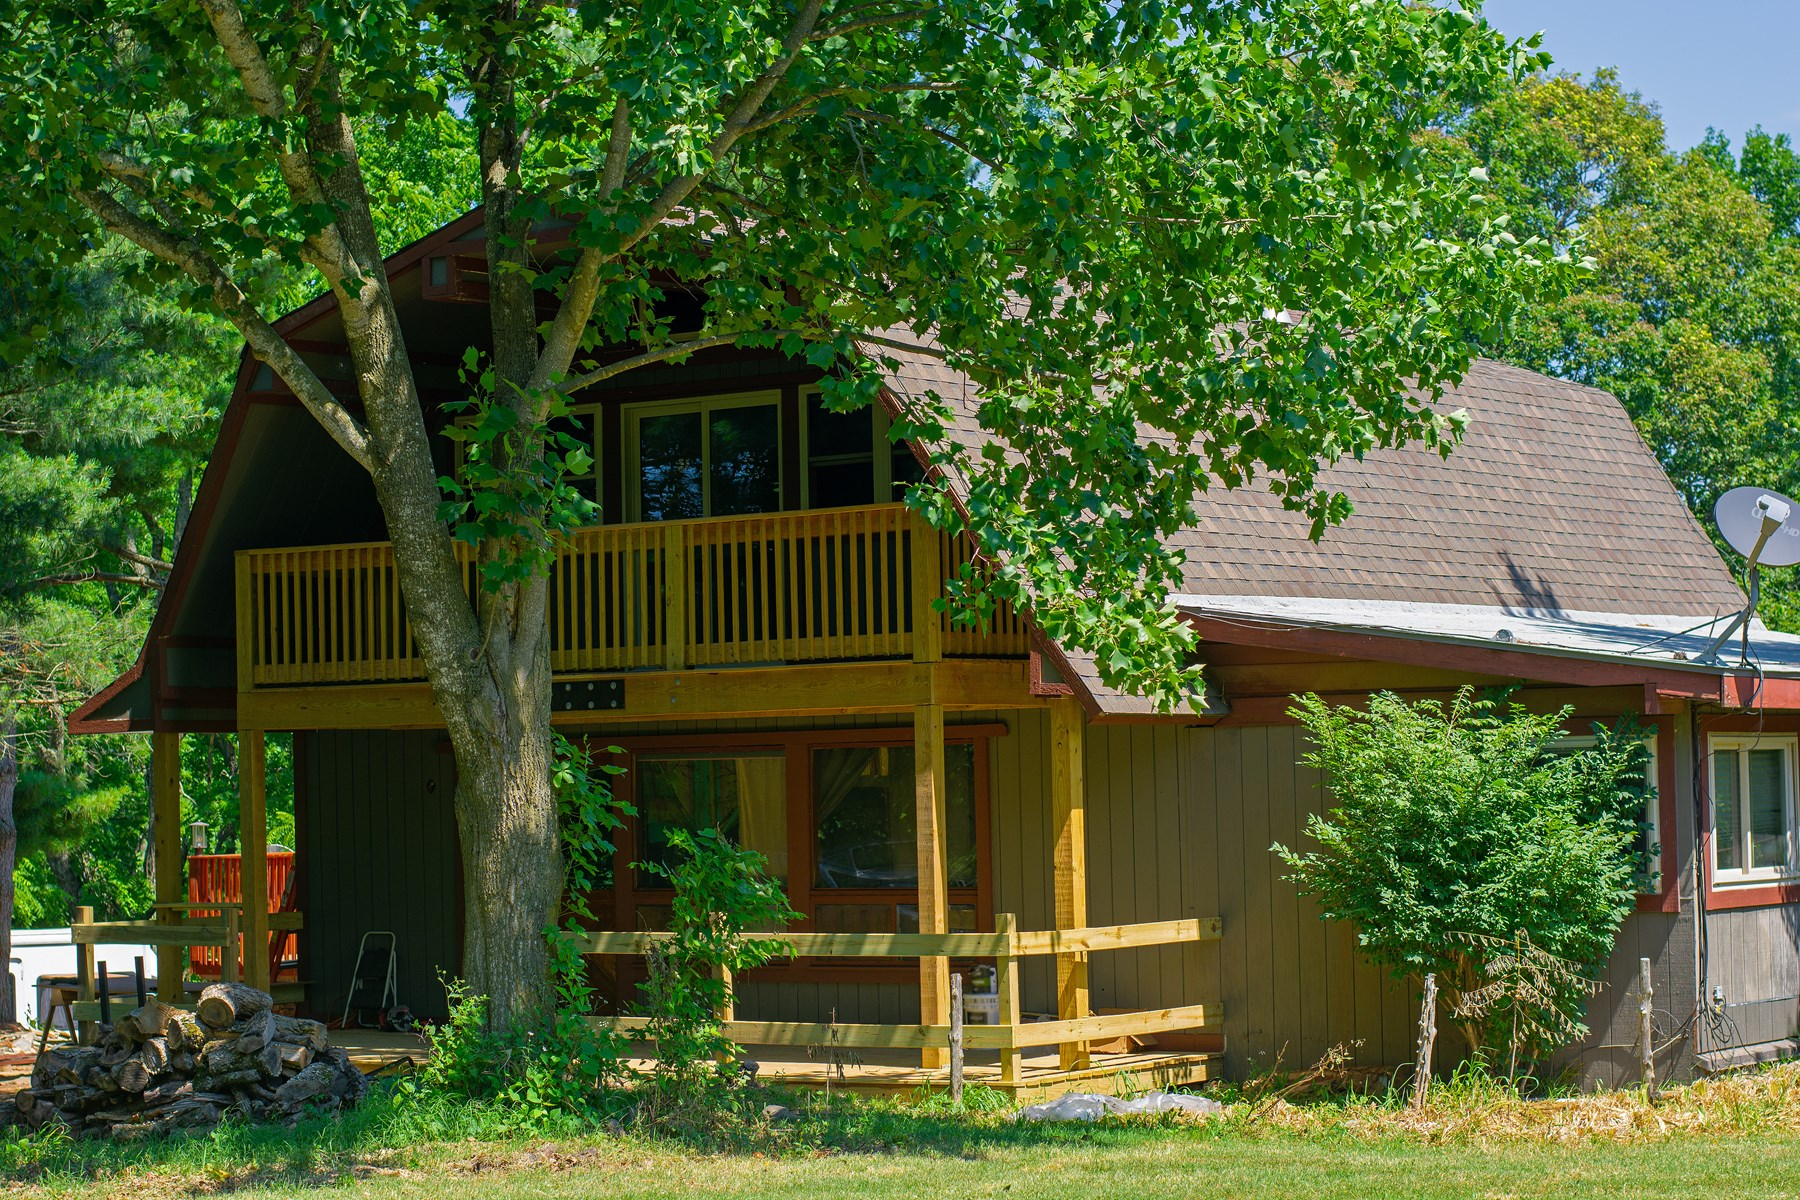 HOME WITH ACREAGE FOR SALE